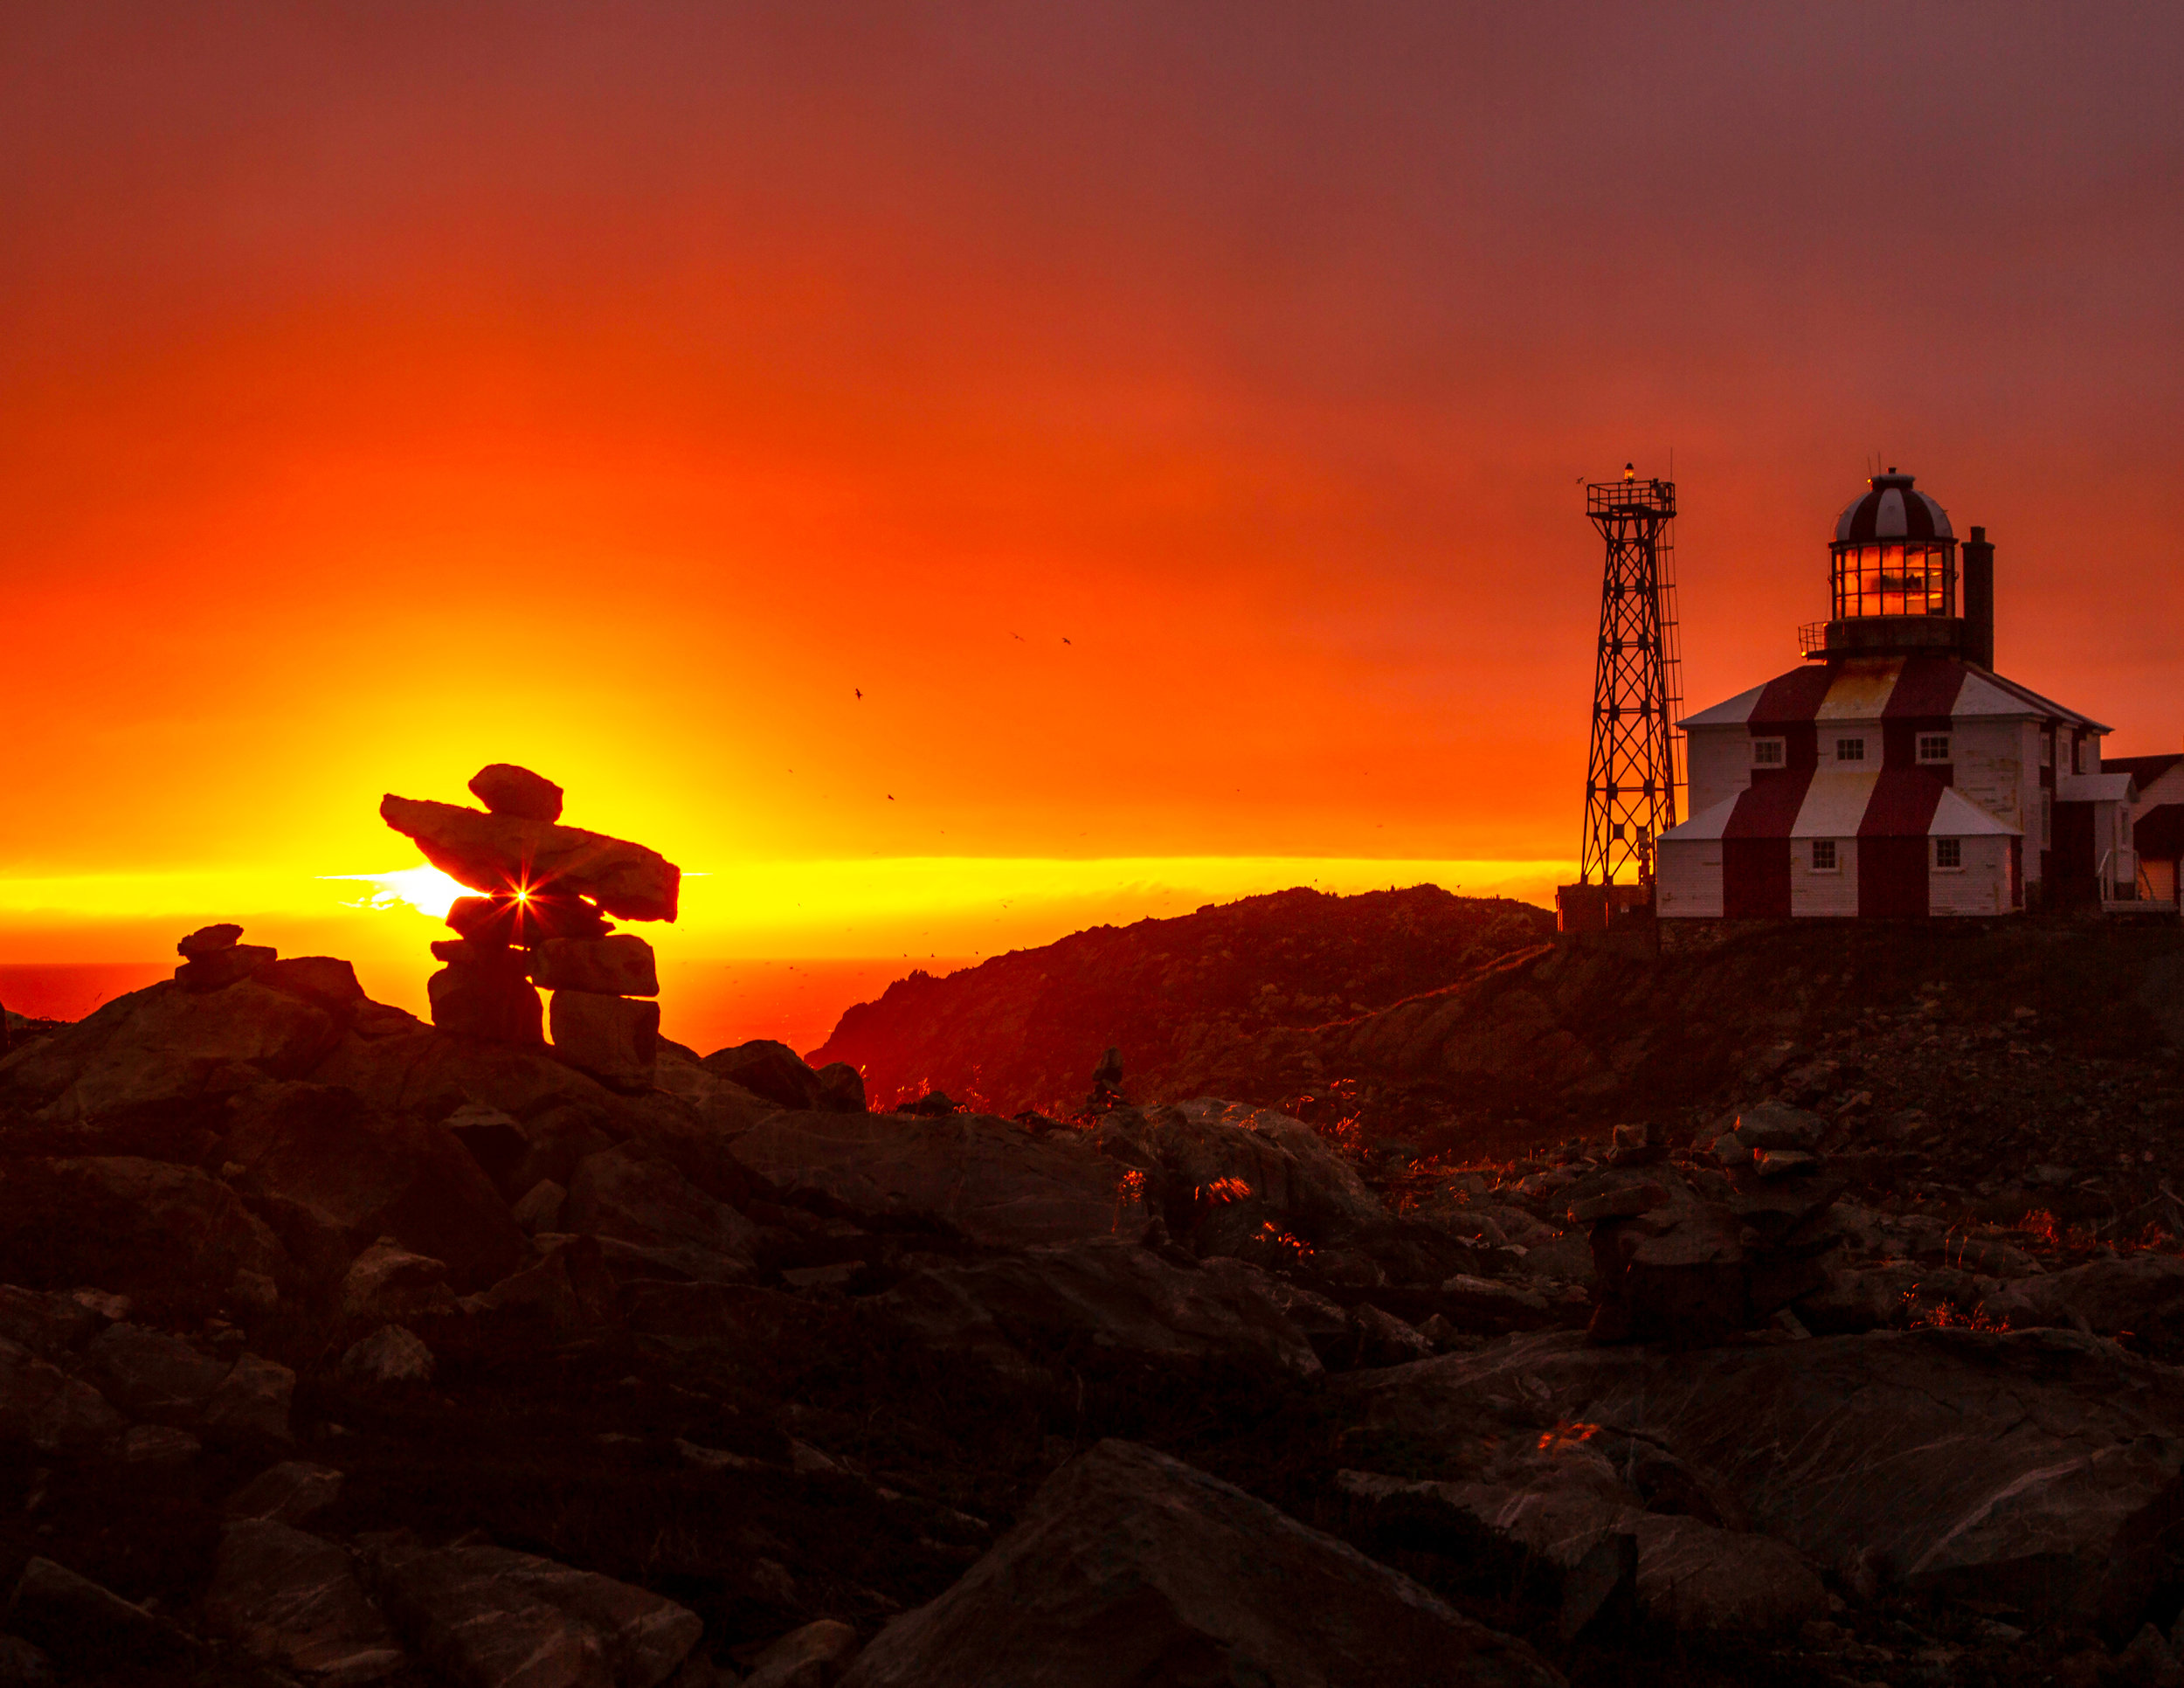 3-march-Cape-Bonavista-Lighthouse.jpg